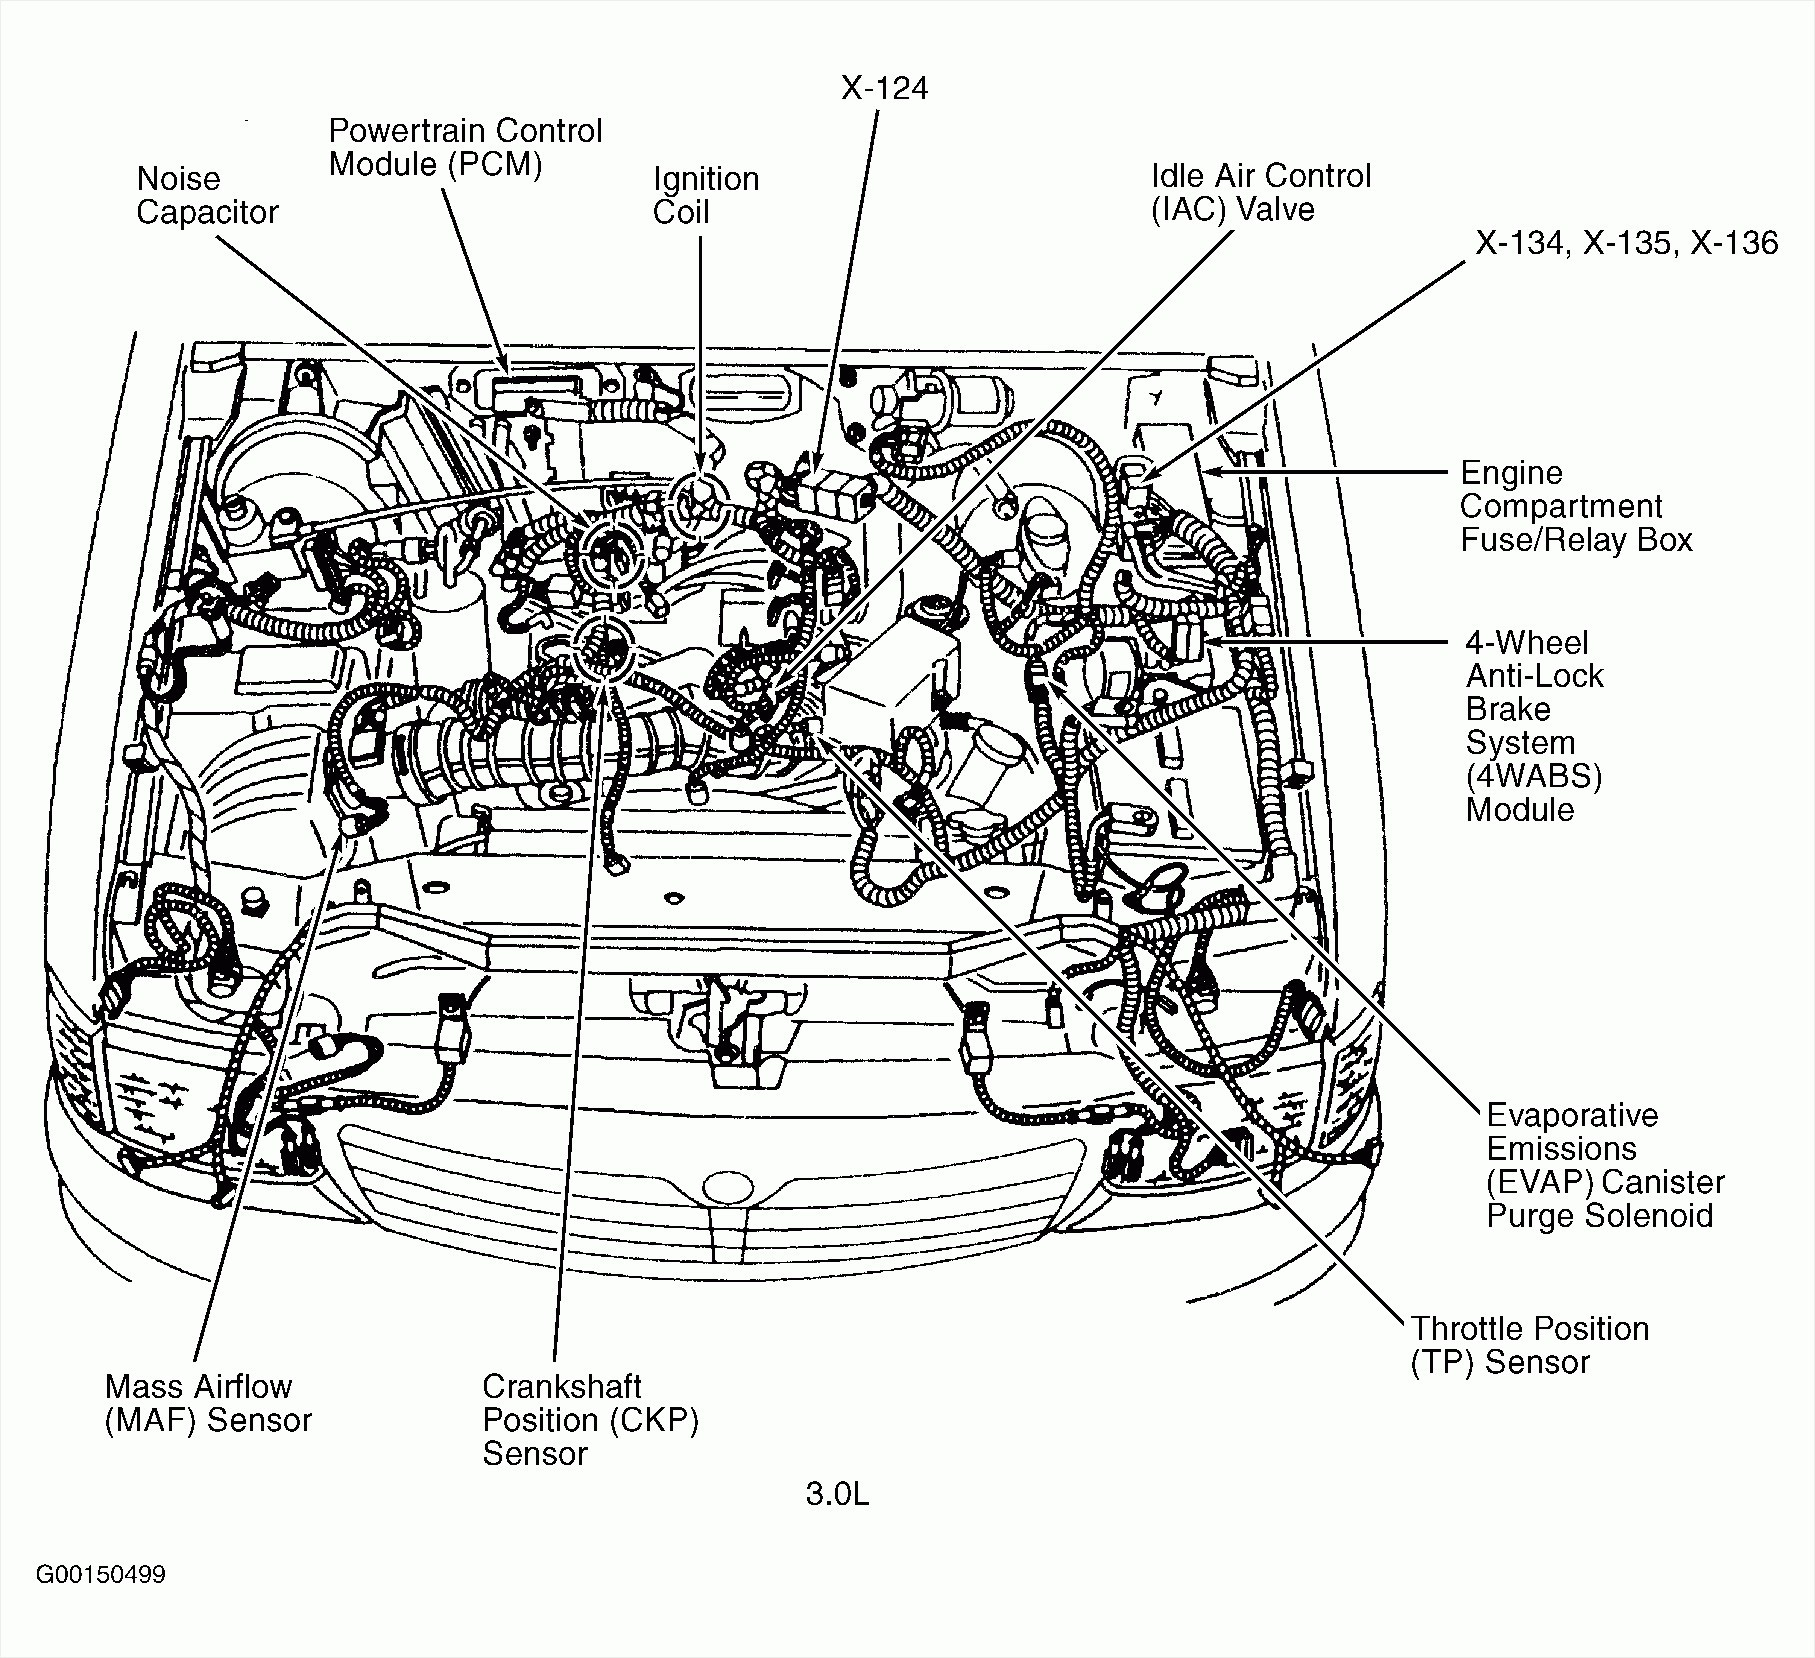 hight resolution of plymouth engine schematics wiring diagram name 98 plymouth breeze engine diagram plymouth engine diagram